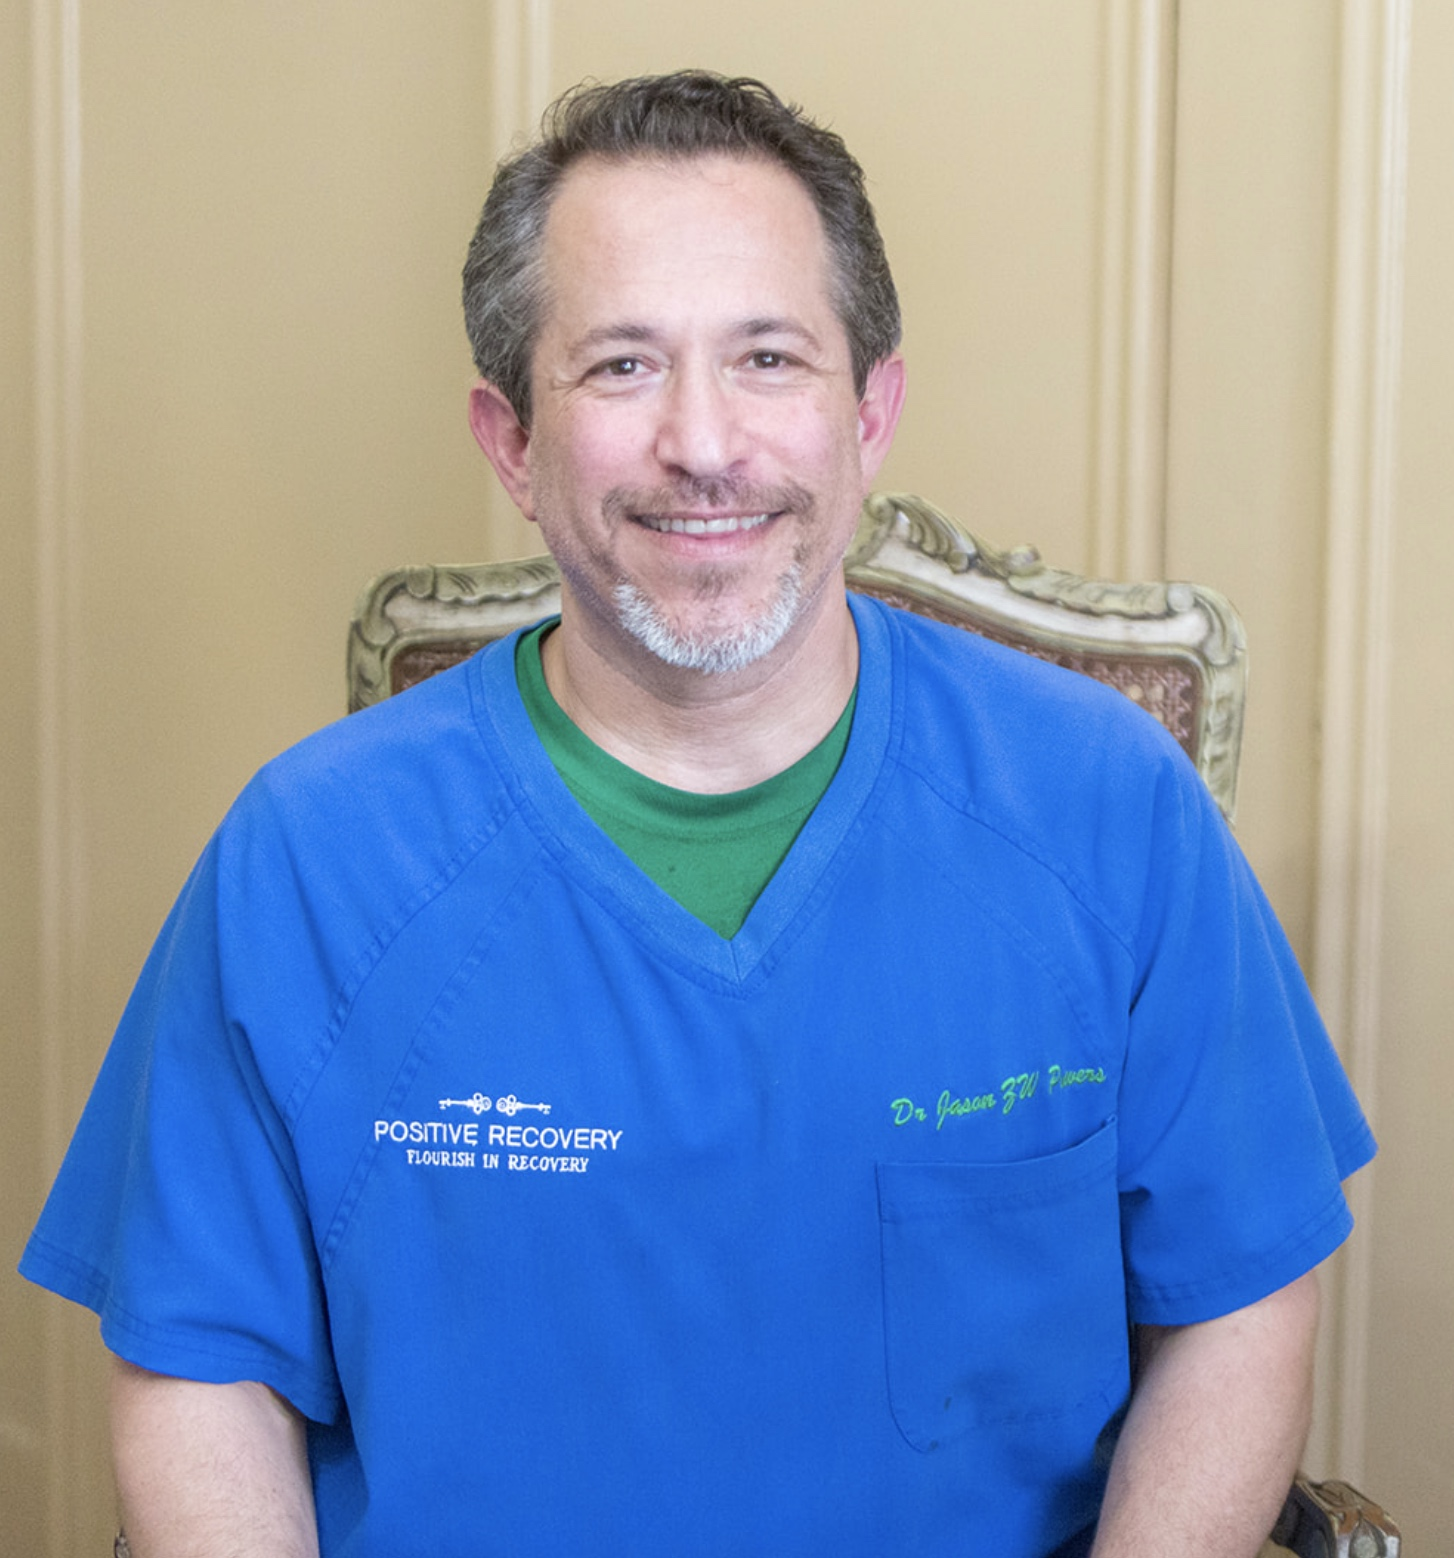 Dr. Jason ZW Powers, MD, MAPP